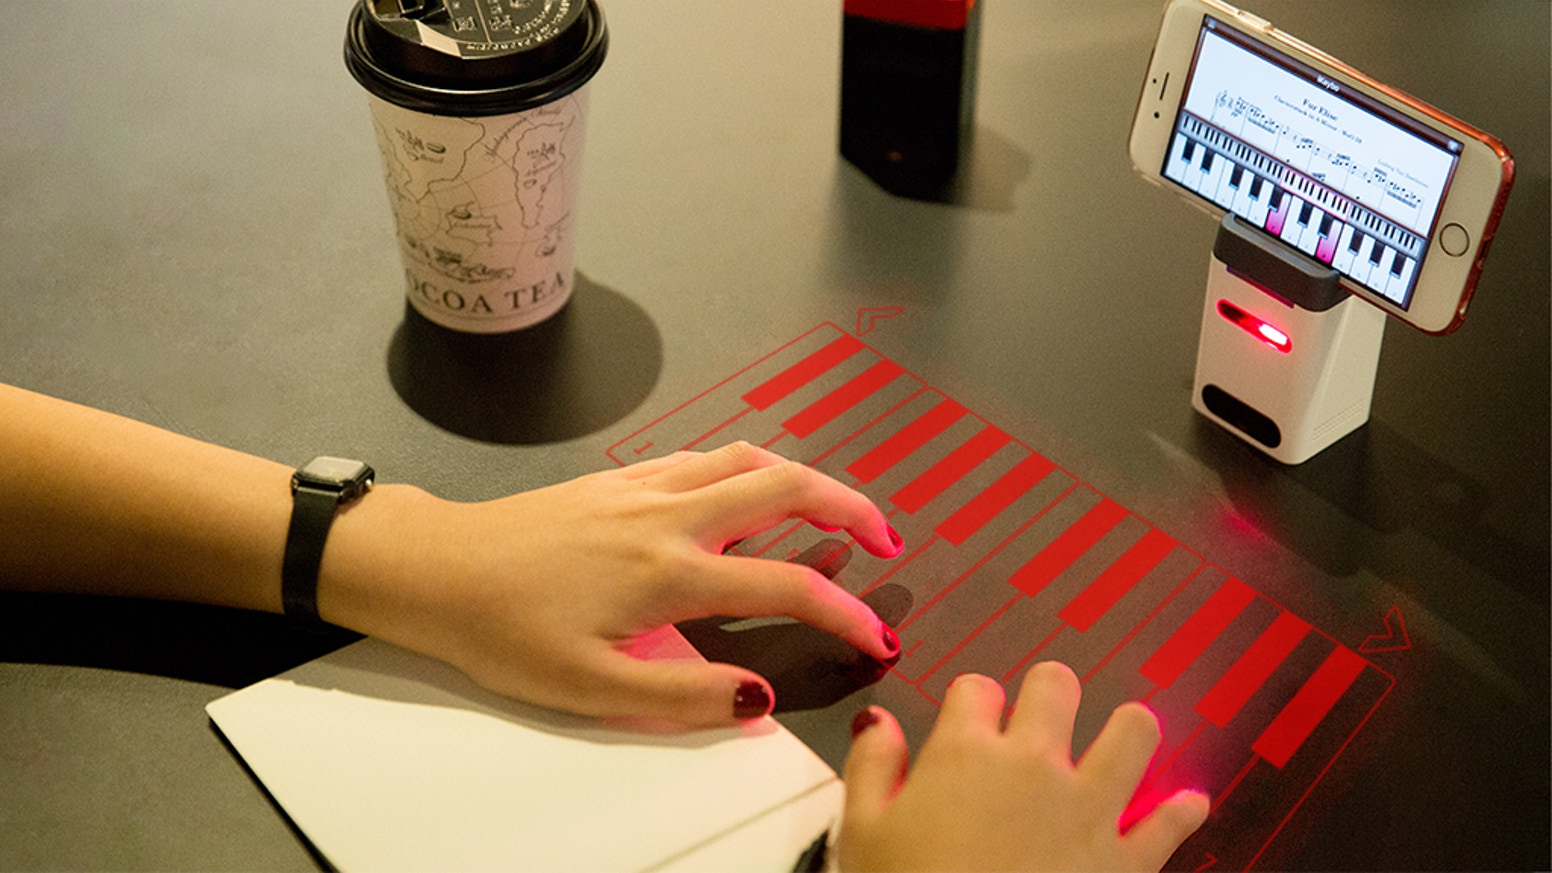 The world's first virtual laser projection multilingual keyboard, virtual piano, and portable charger. All Together.